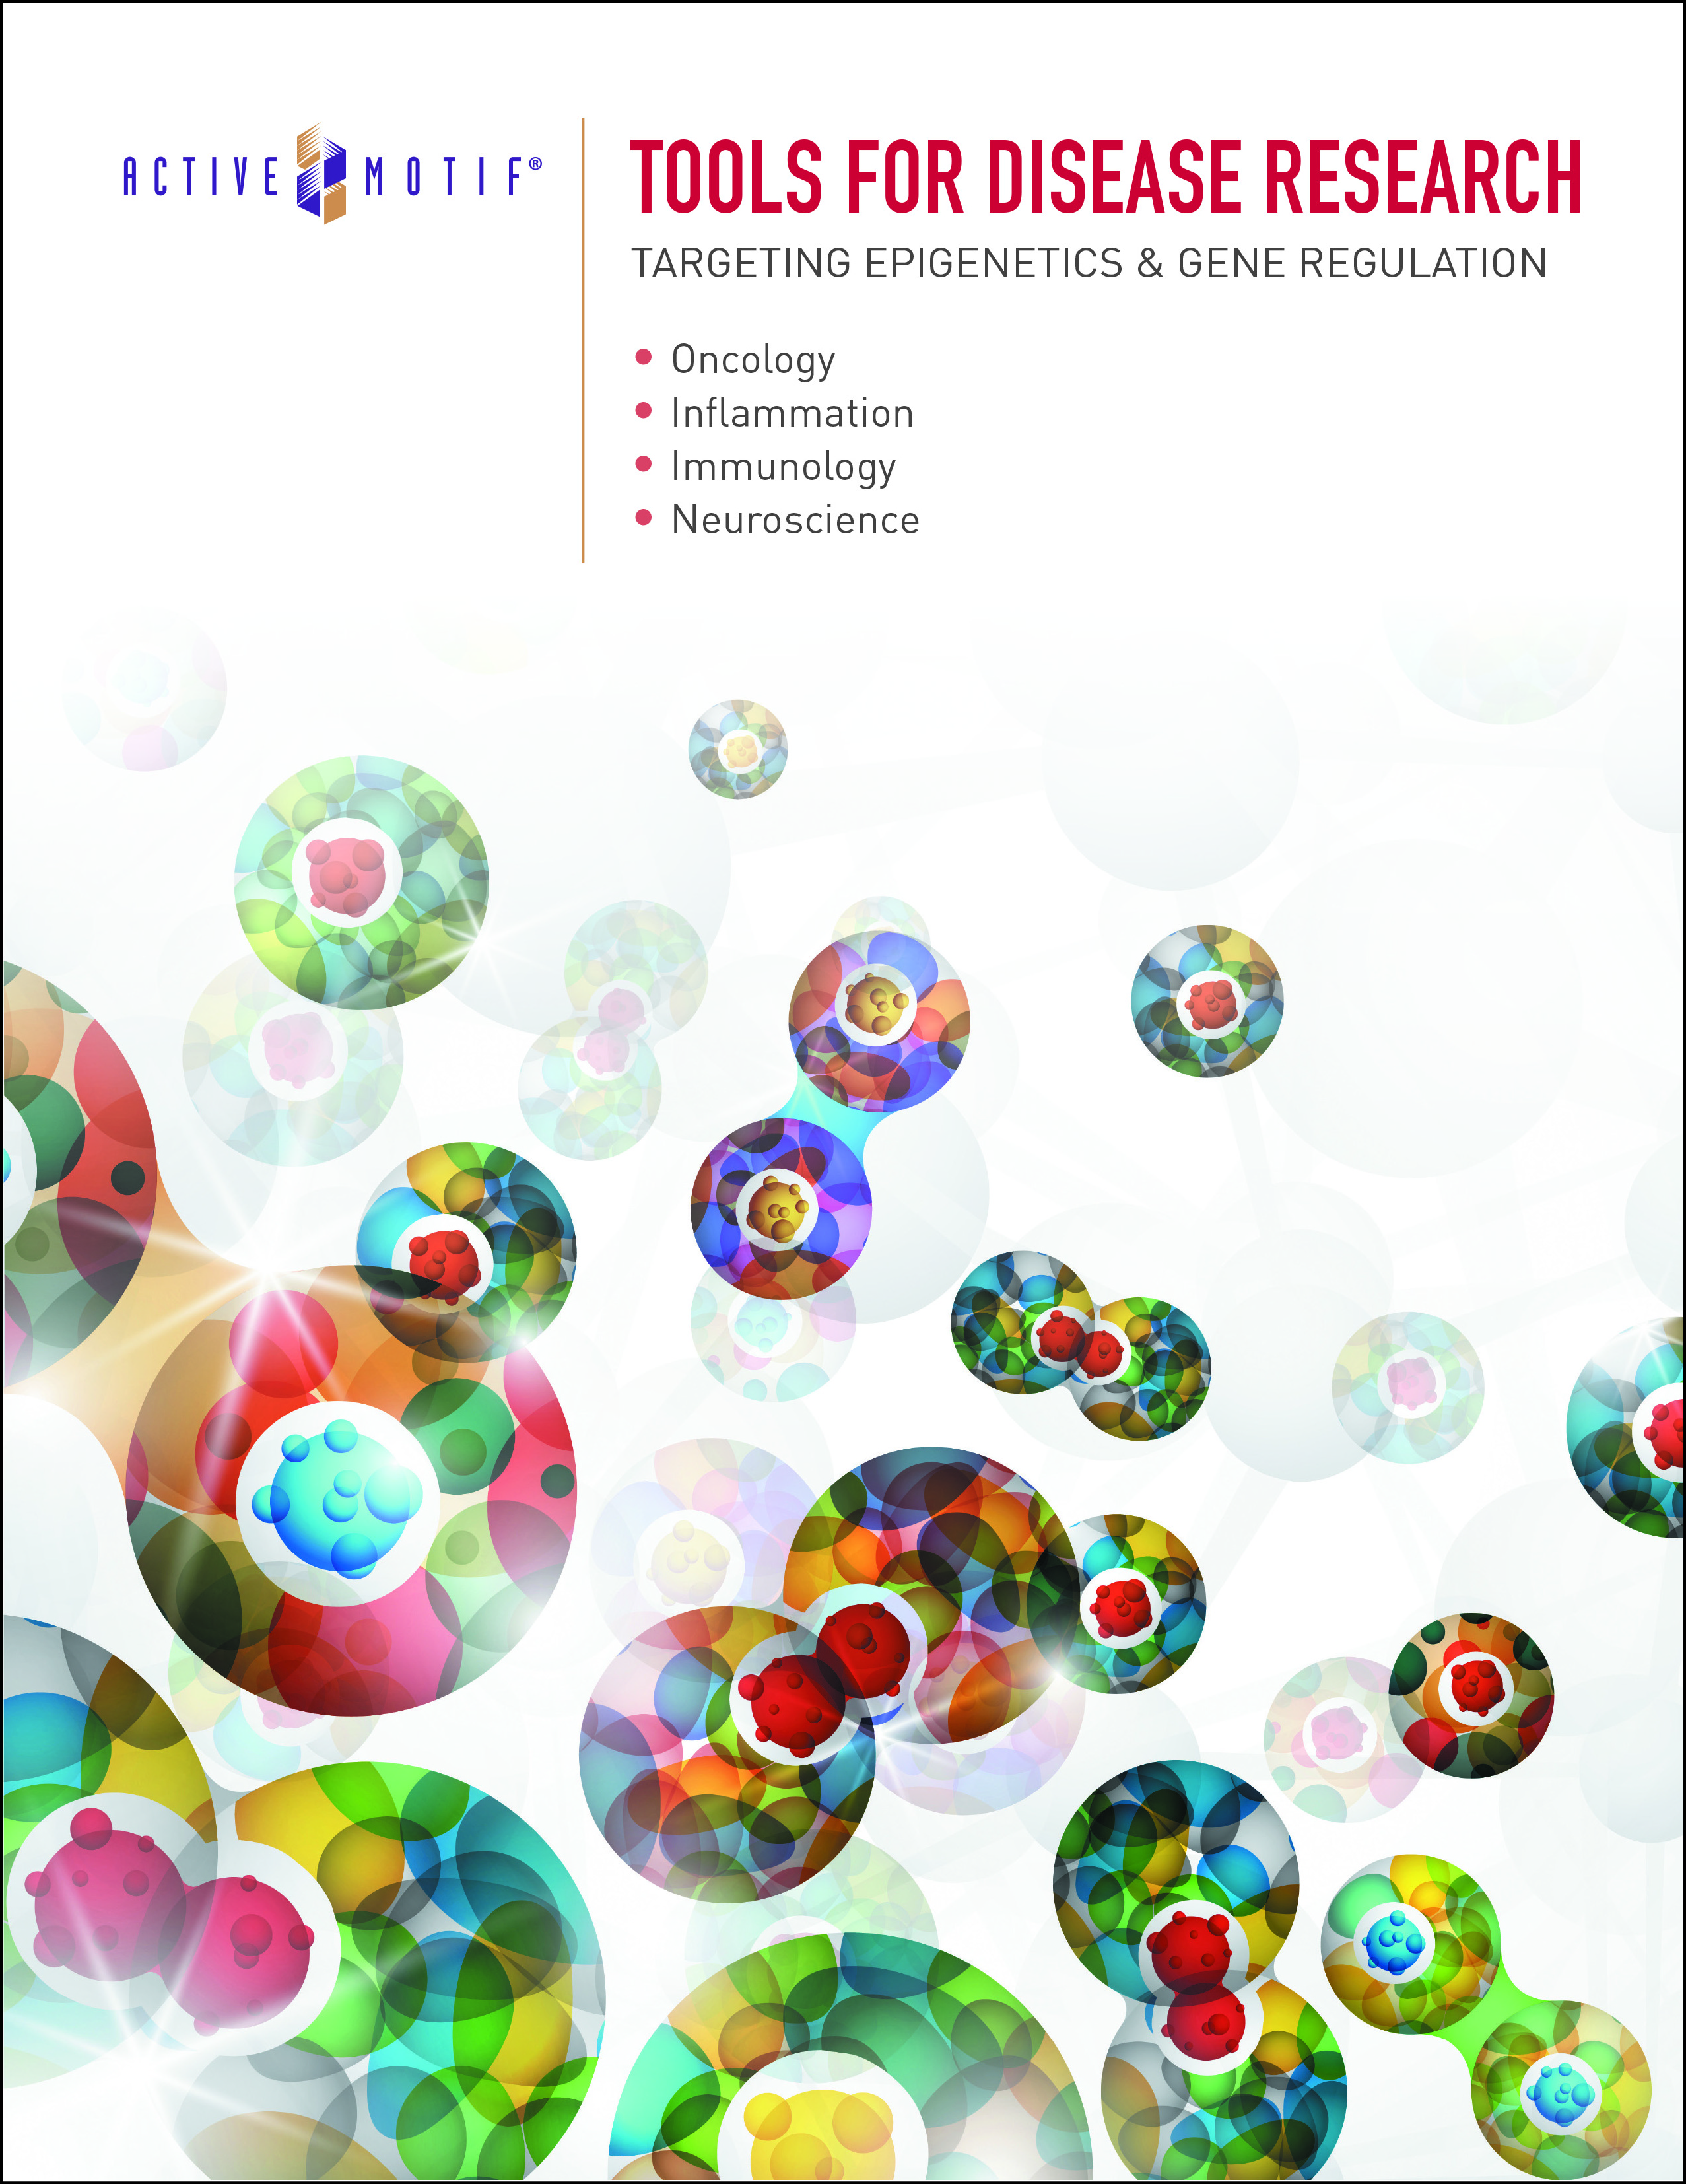 Active Motif's Tools for Disease Research brochure